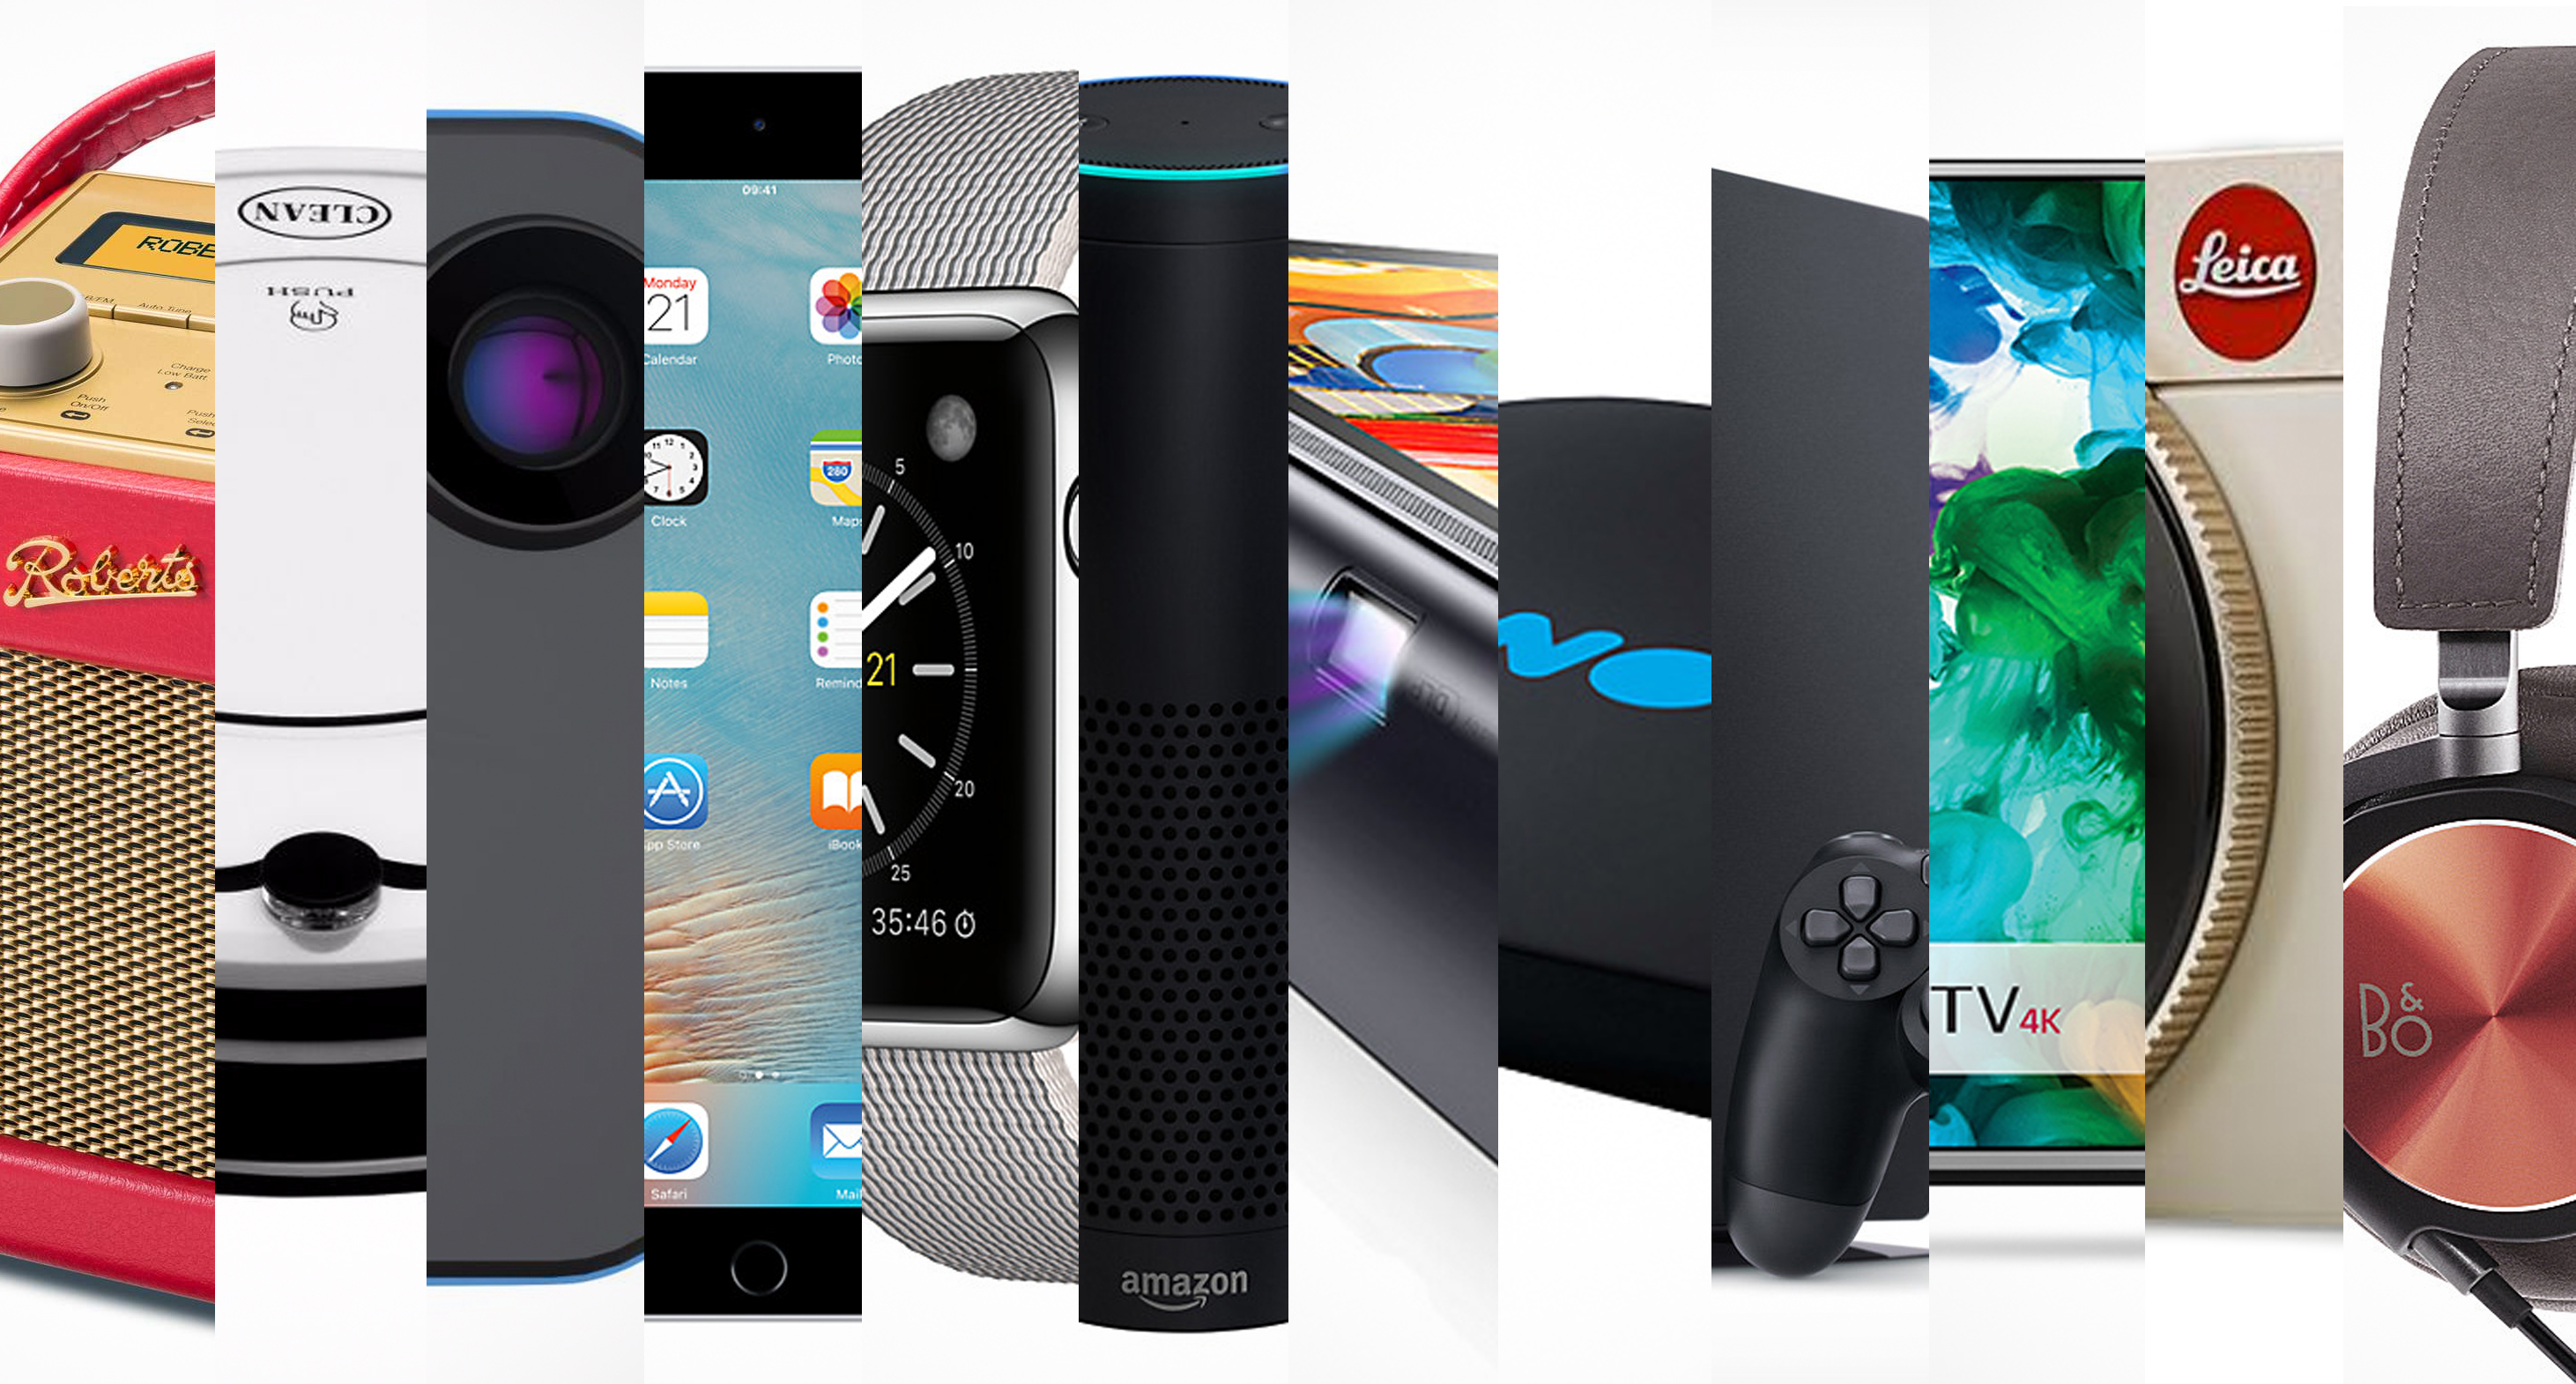 Deals of note: Cyber Monday special